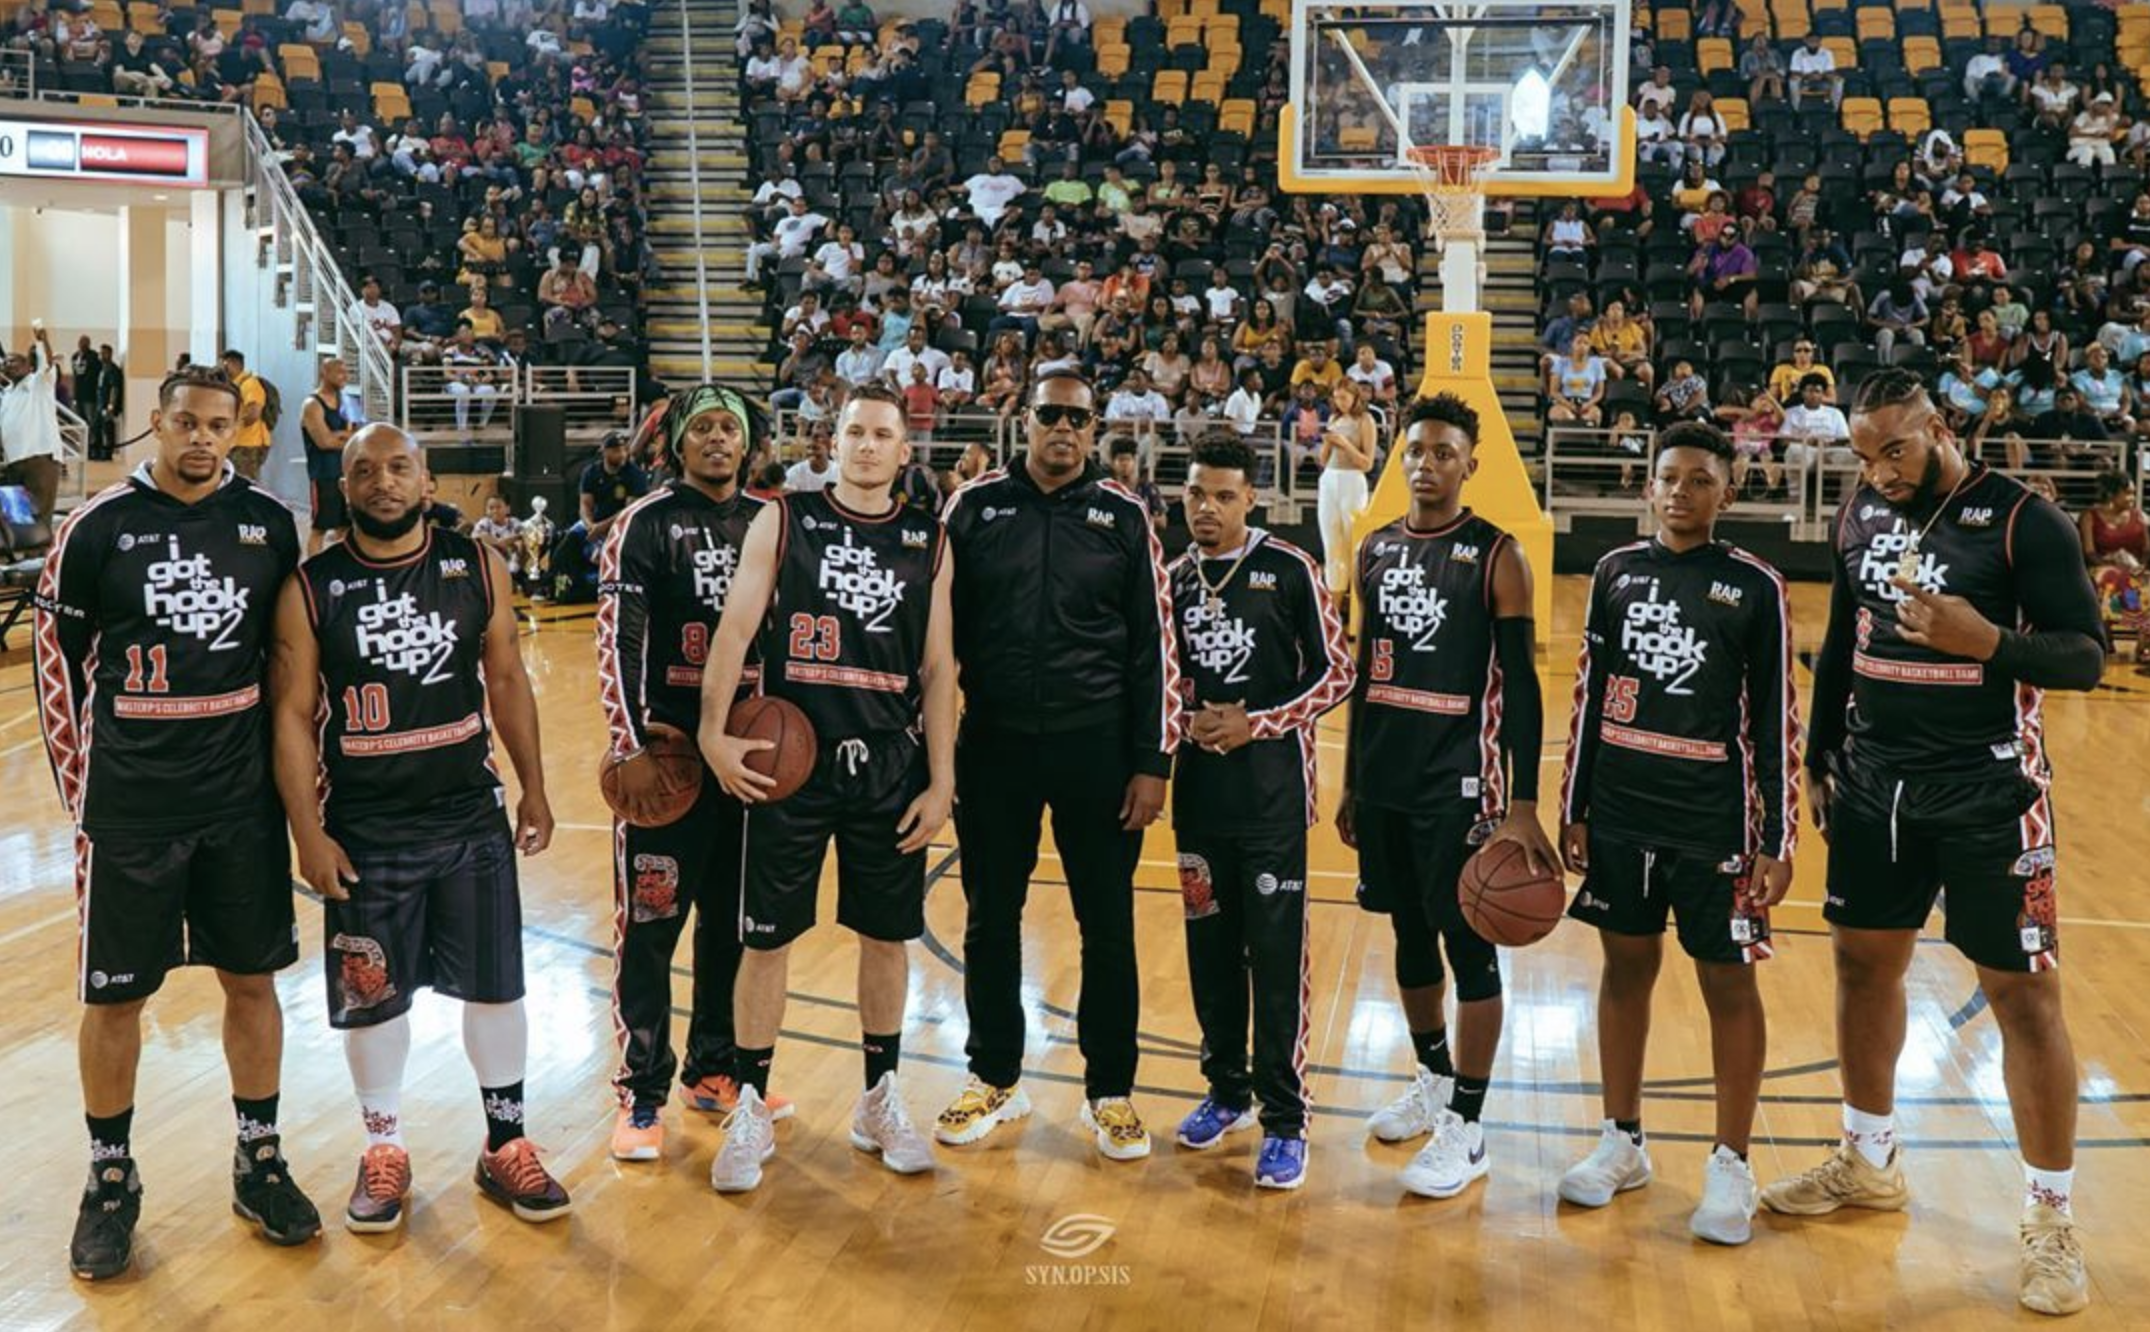 Giving Back In New Orleans: At the 2019 Essence Festival, Master P not only helped lead his team to the W, but the hip-hop icon and business mogul also teamed-up with Wooter Apparel for another jersey/uniform collaboration.